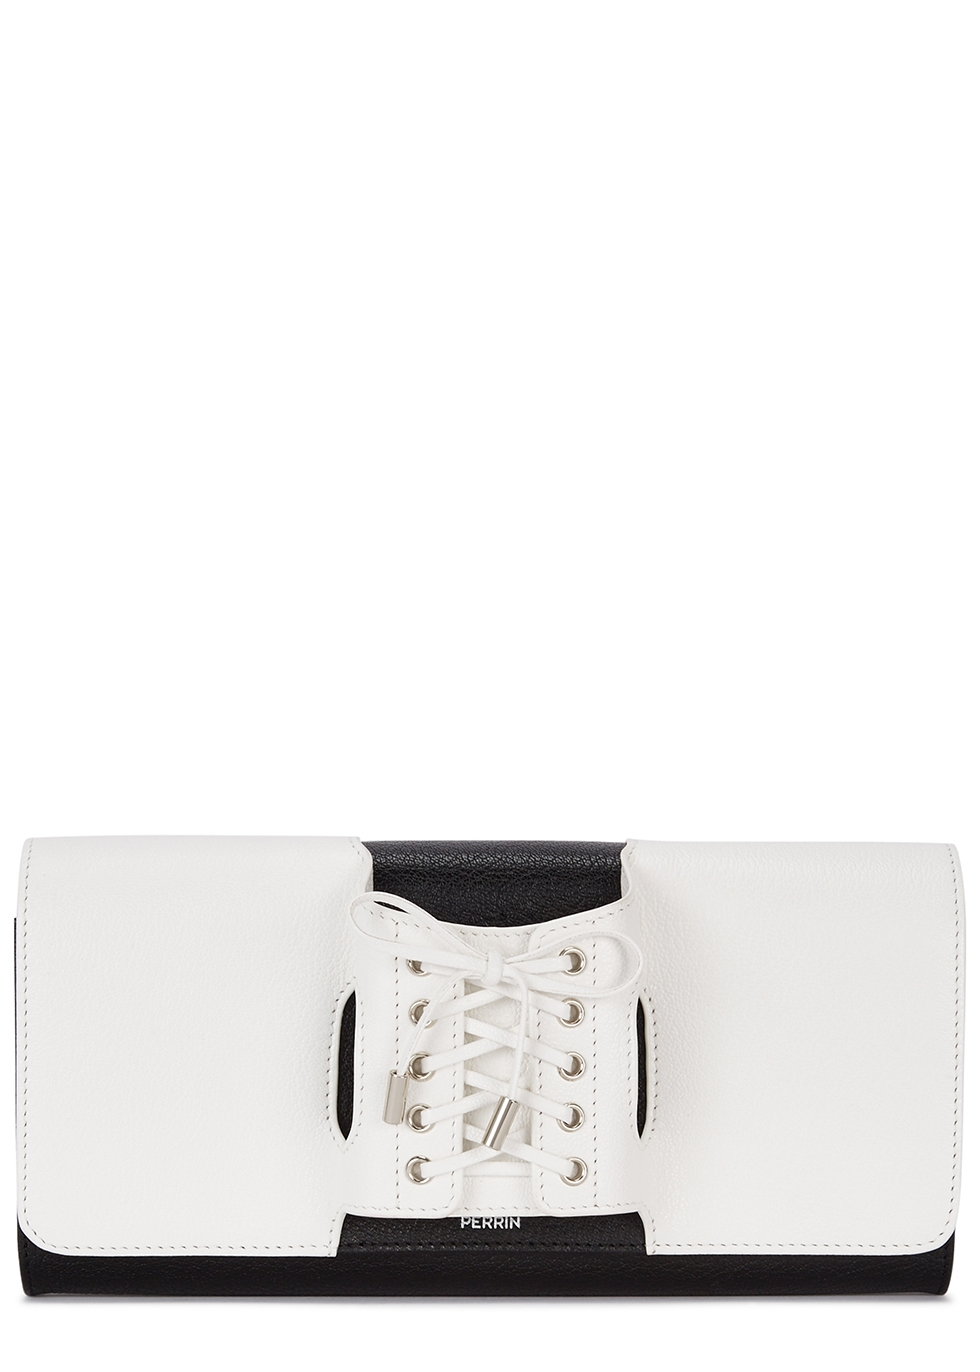 PERRIN Le Corset Monochrome Leather Clutch in Black And White